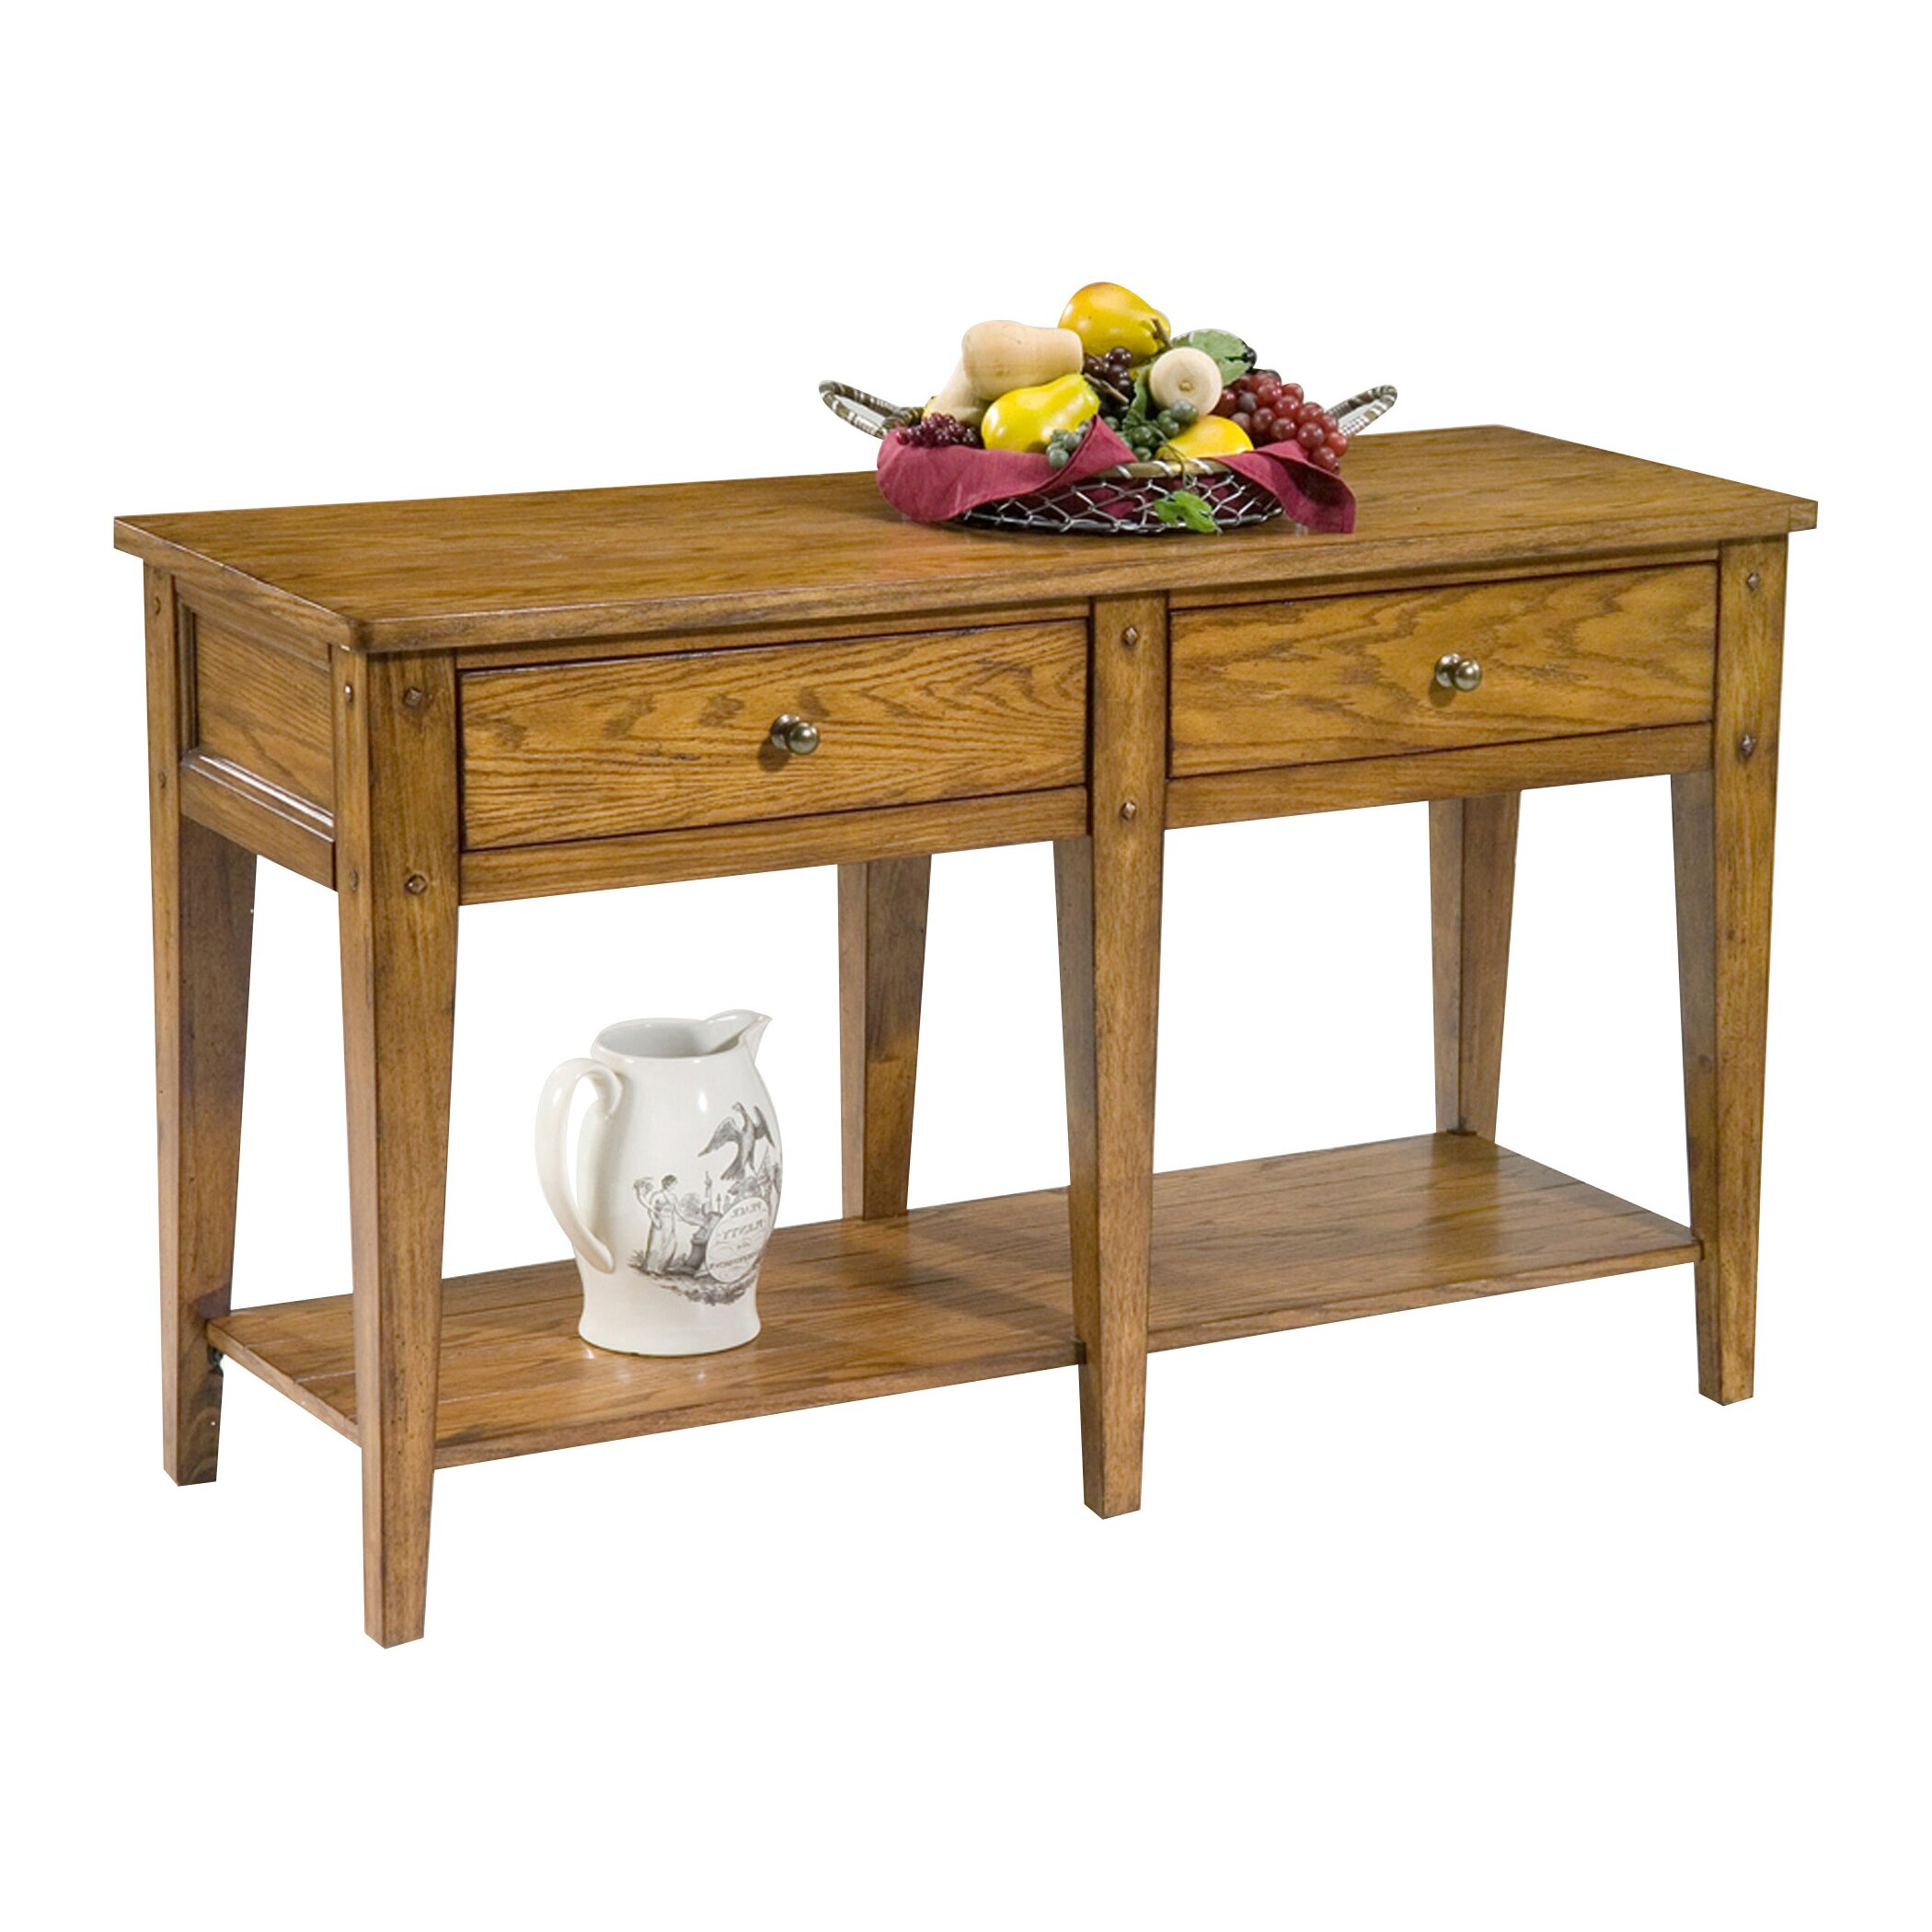 Loon Peak C2 AE Menifee Console Table LNPK kitchen console table Loon Peak reg Menifee Console Table